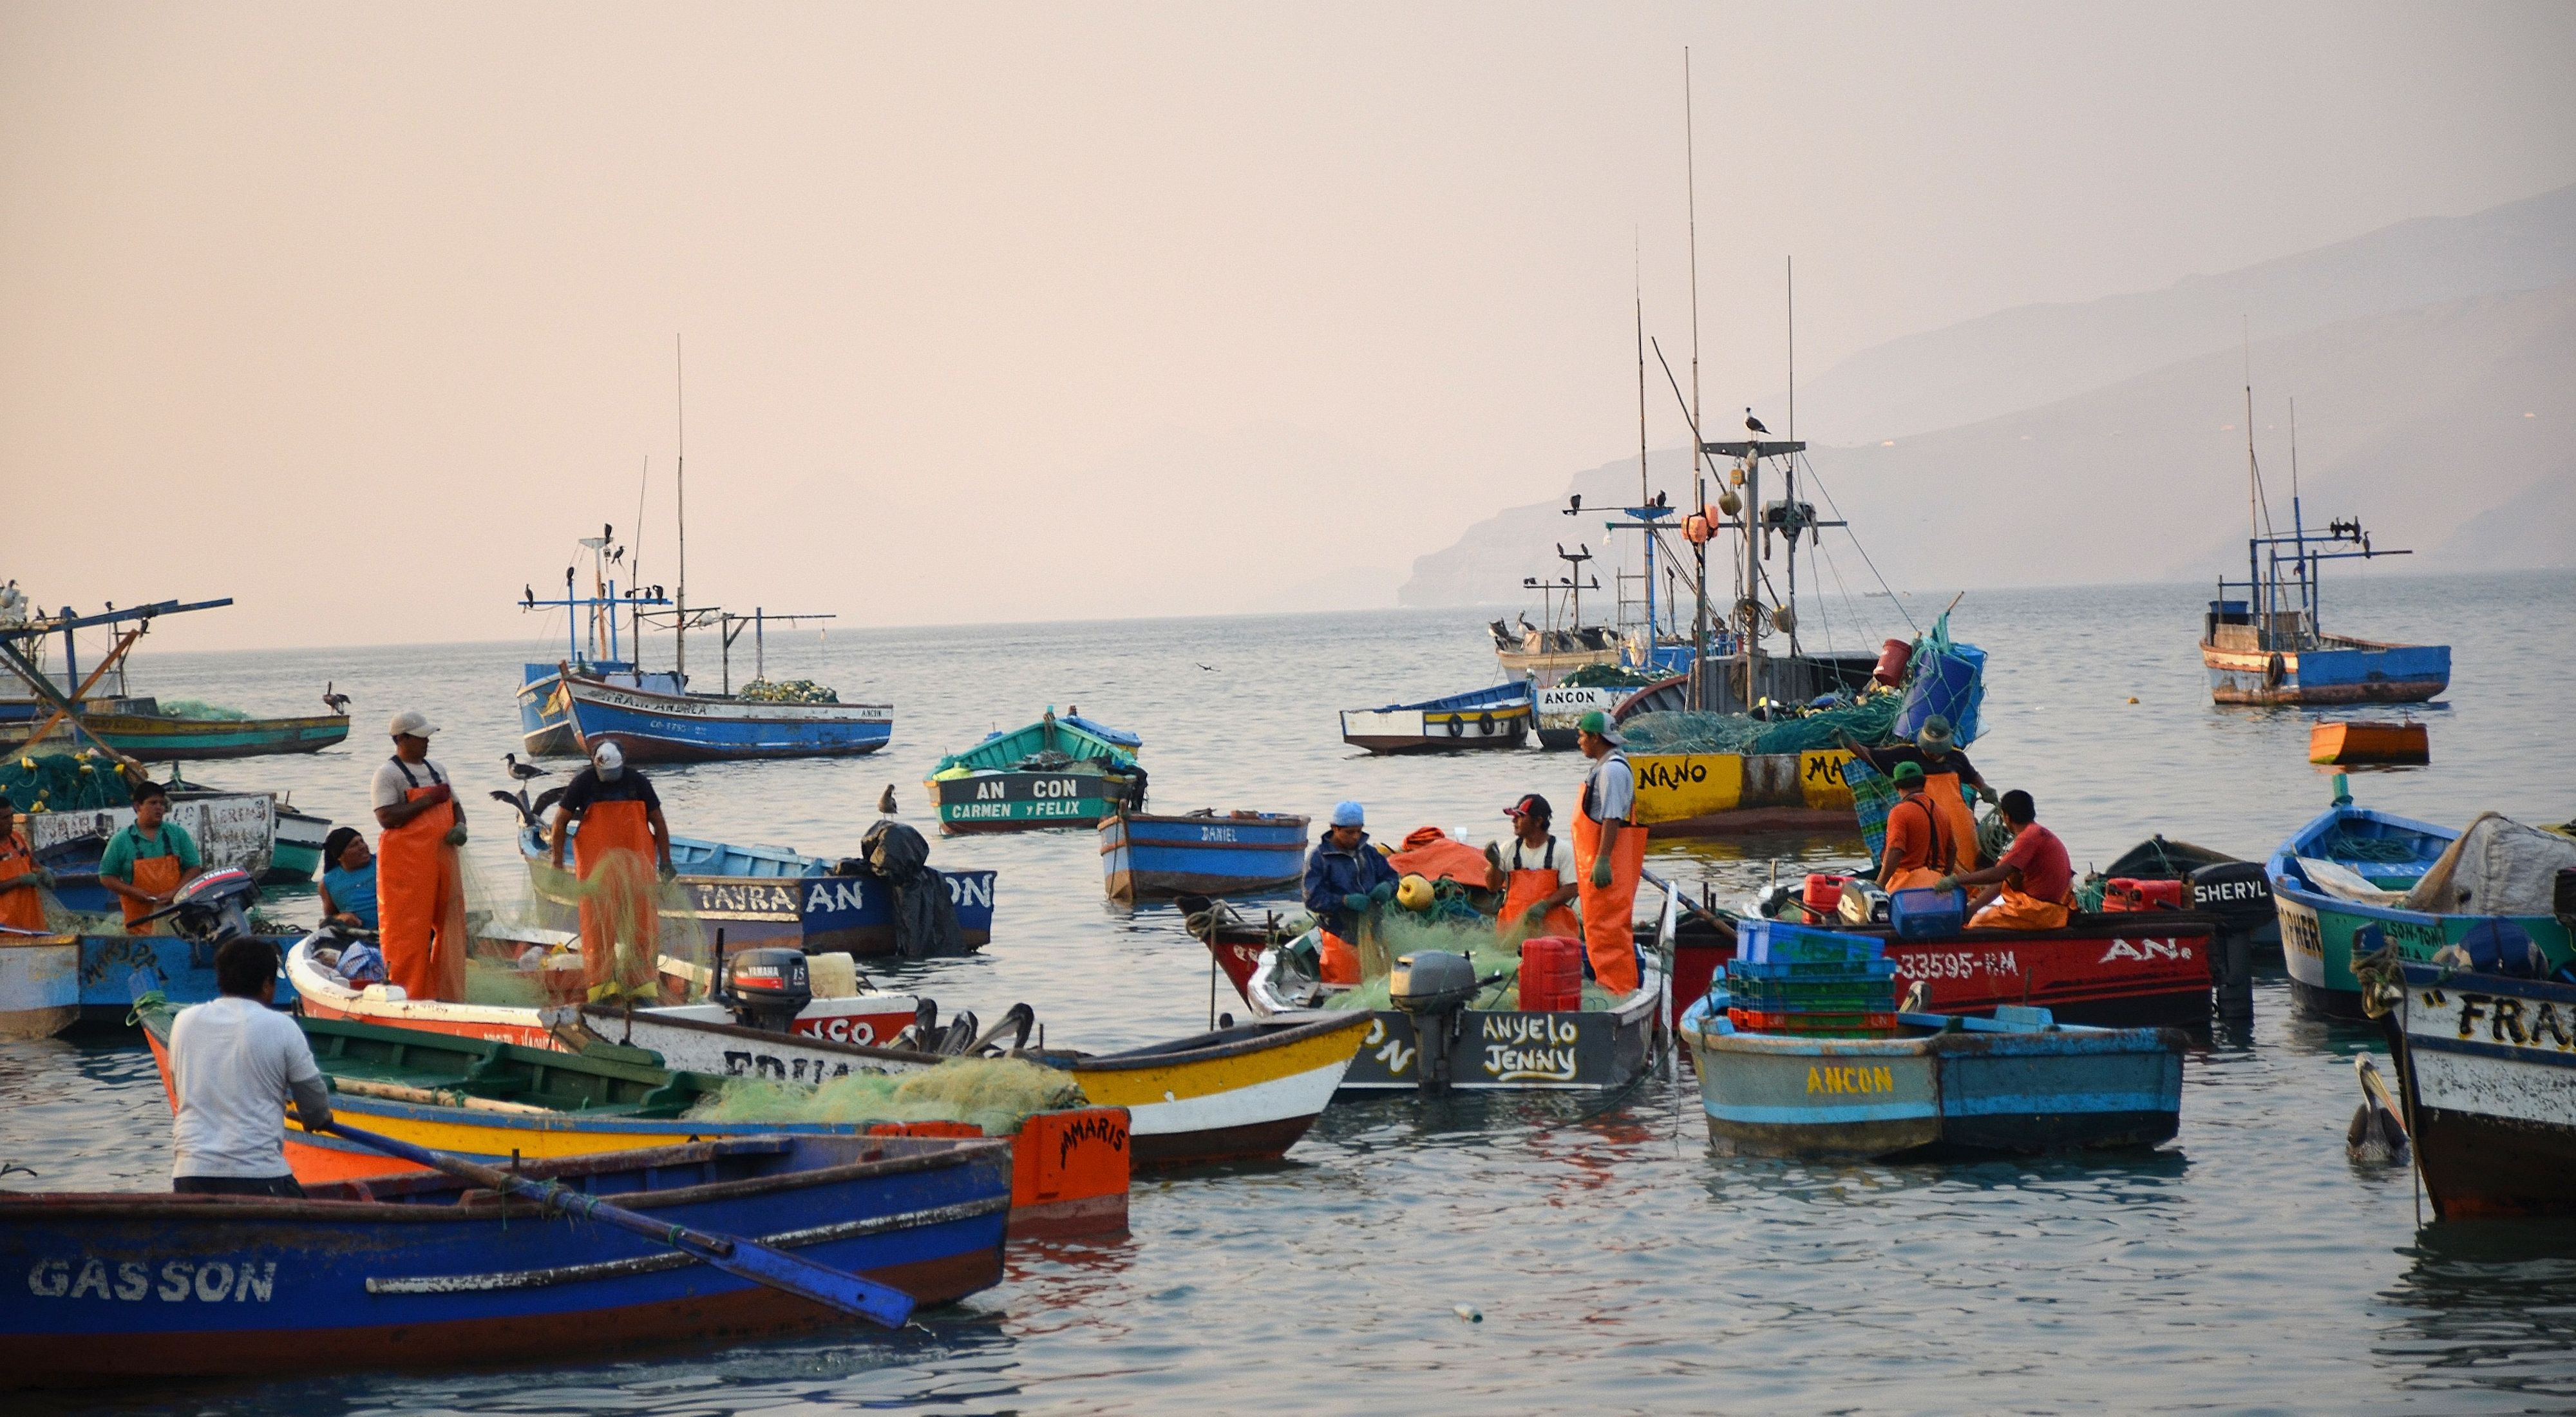 a group of fishers in small fishing boats on the water